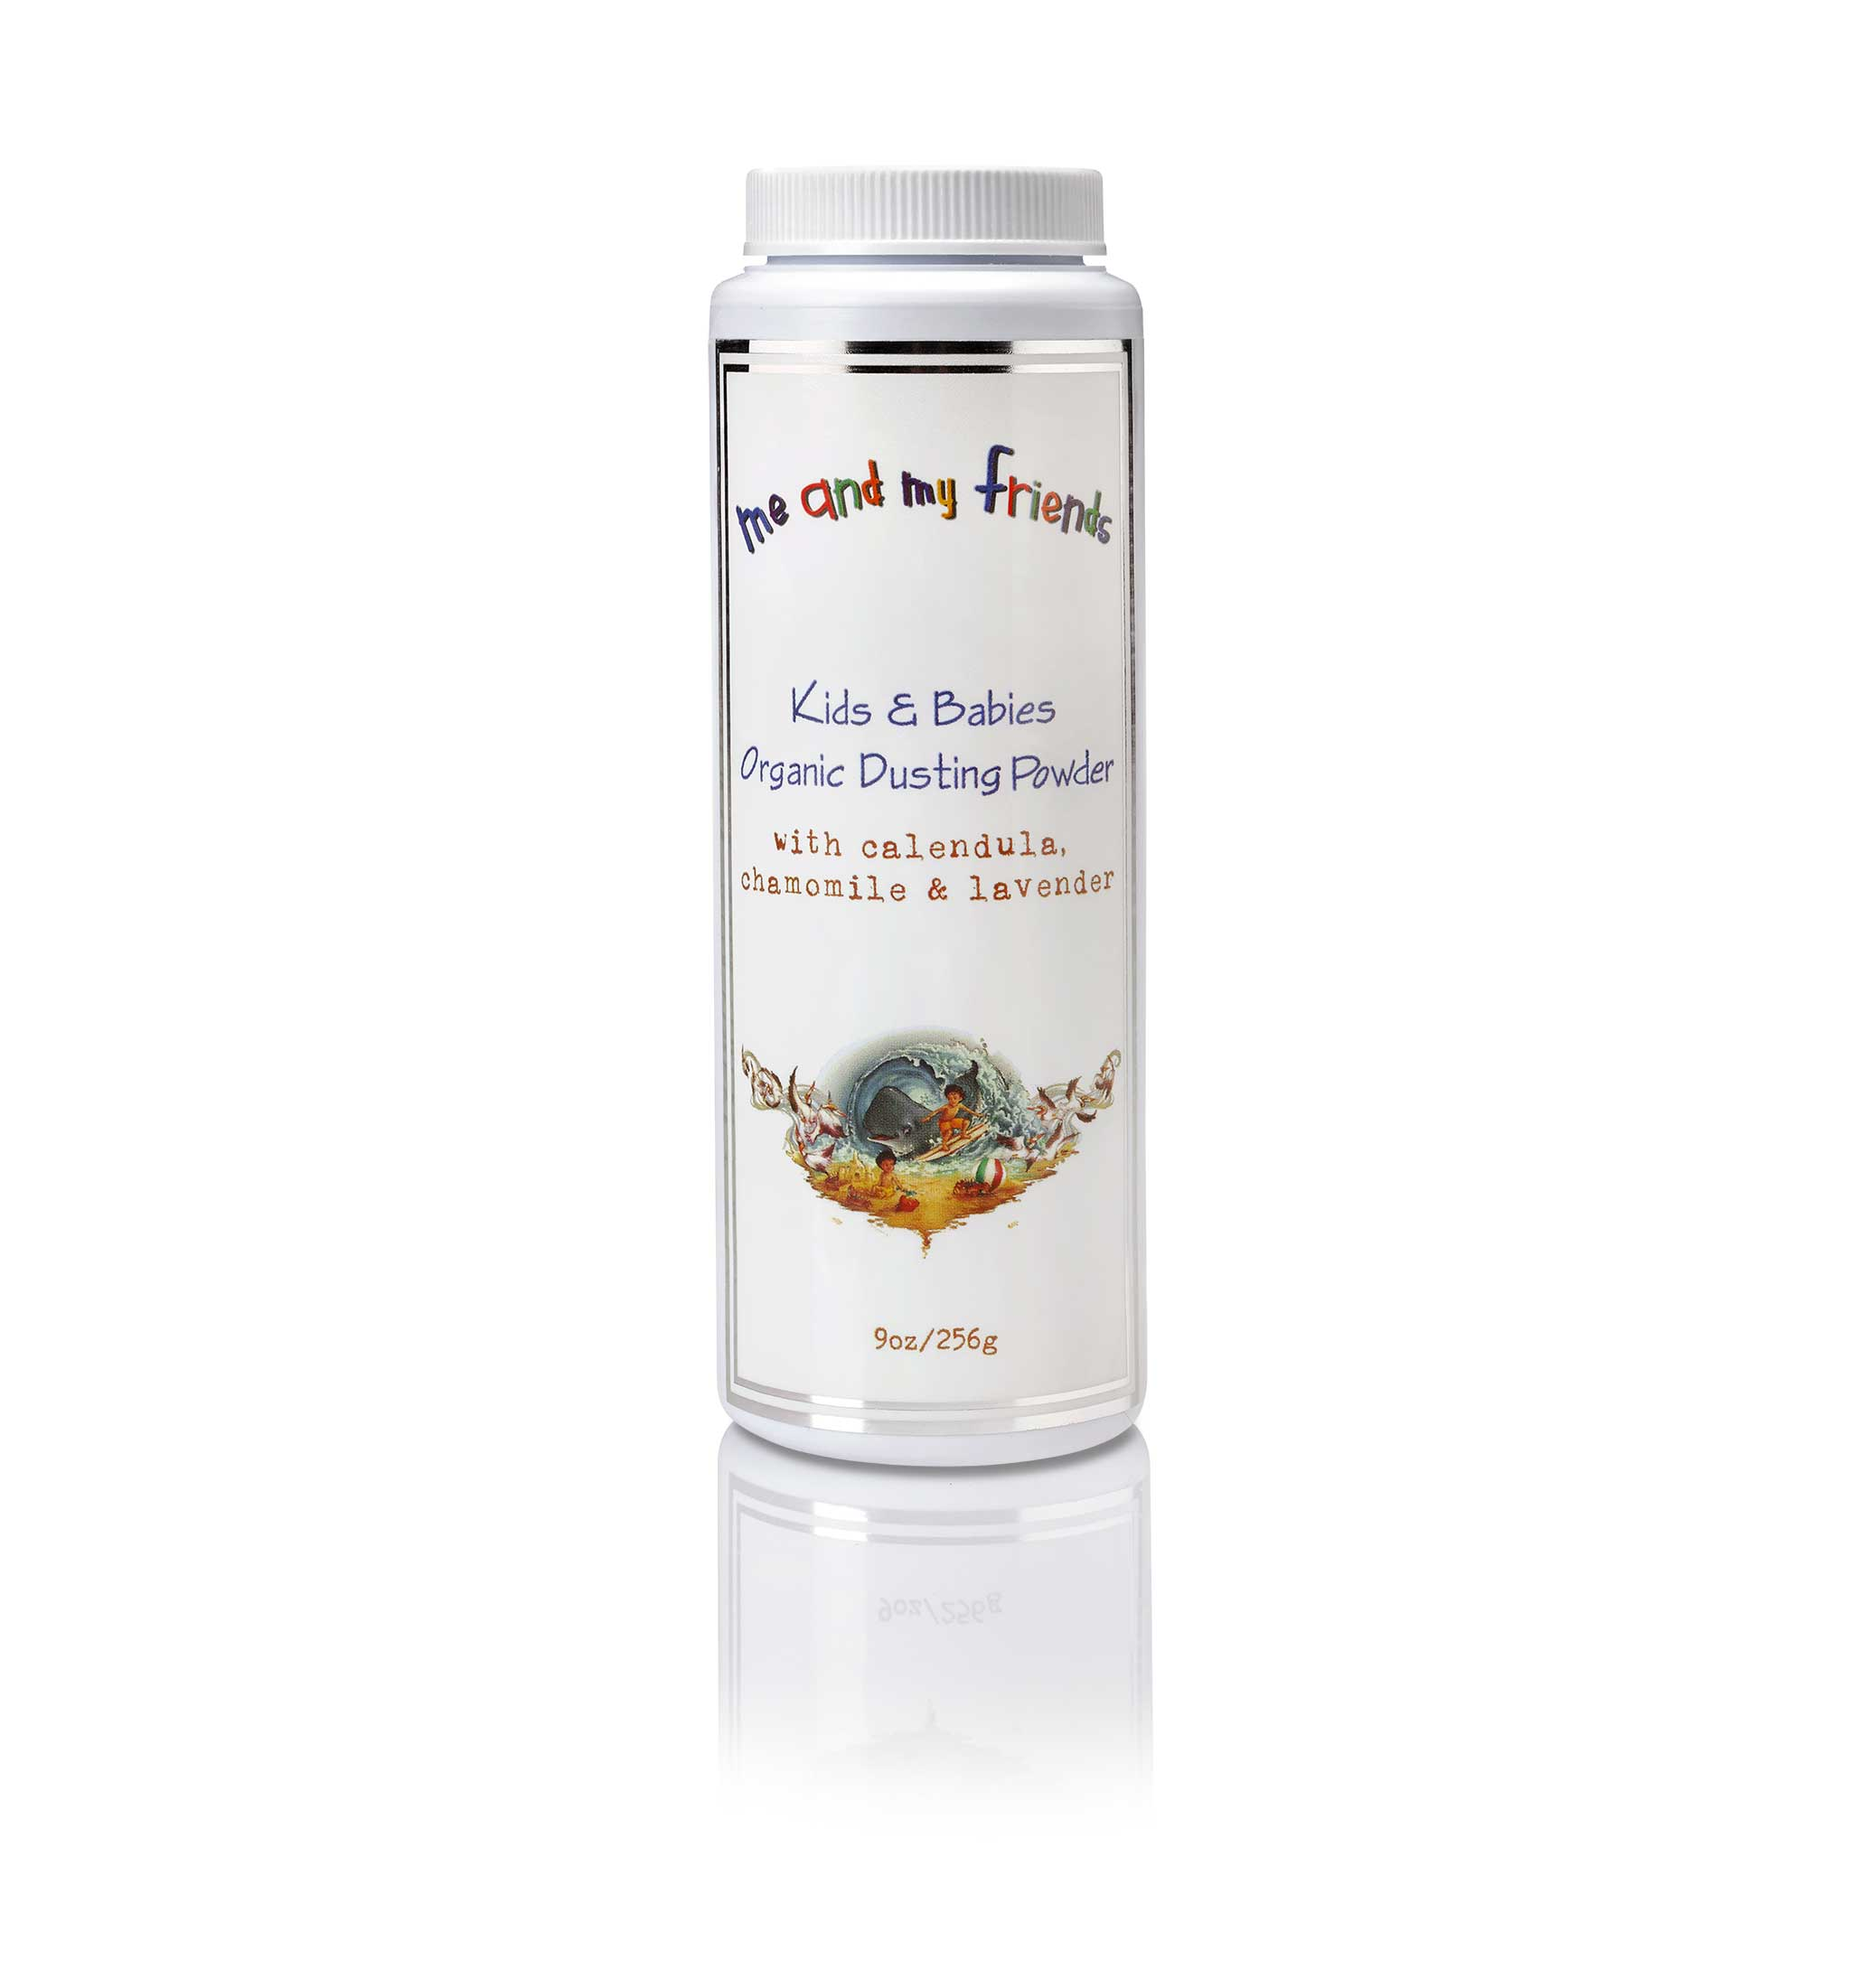 1 9oz Container of Nabila K's Me and Mr Friends Kids and Babies Organic Dusting Powder with Calendula, chamomile and lavender